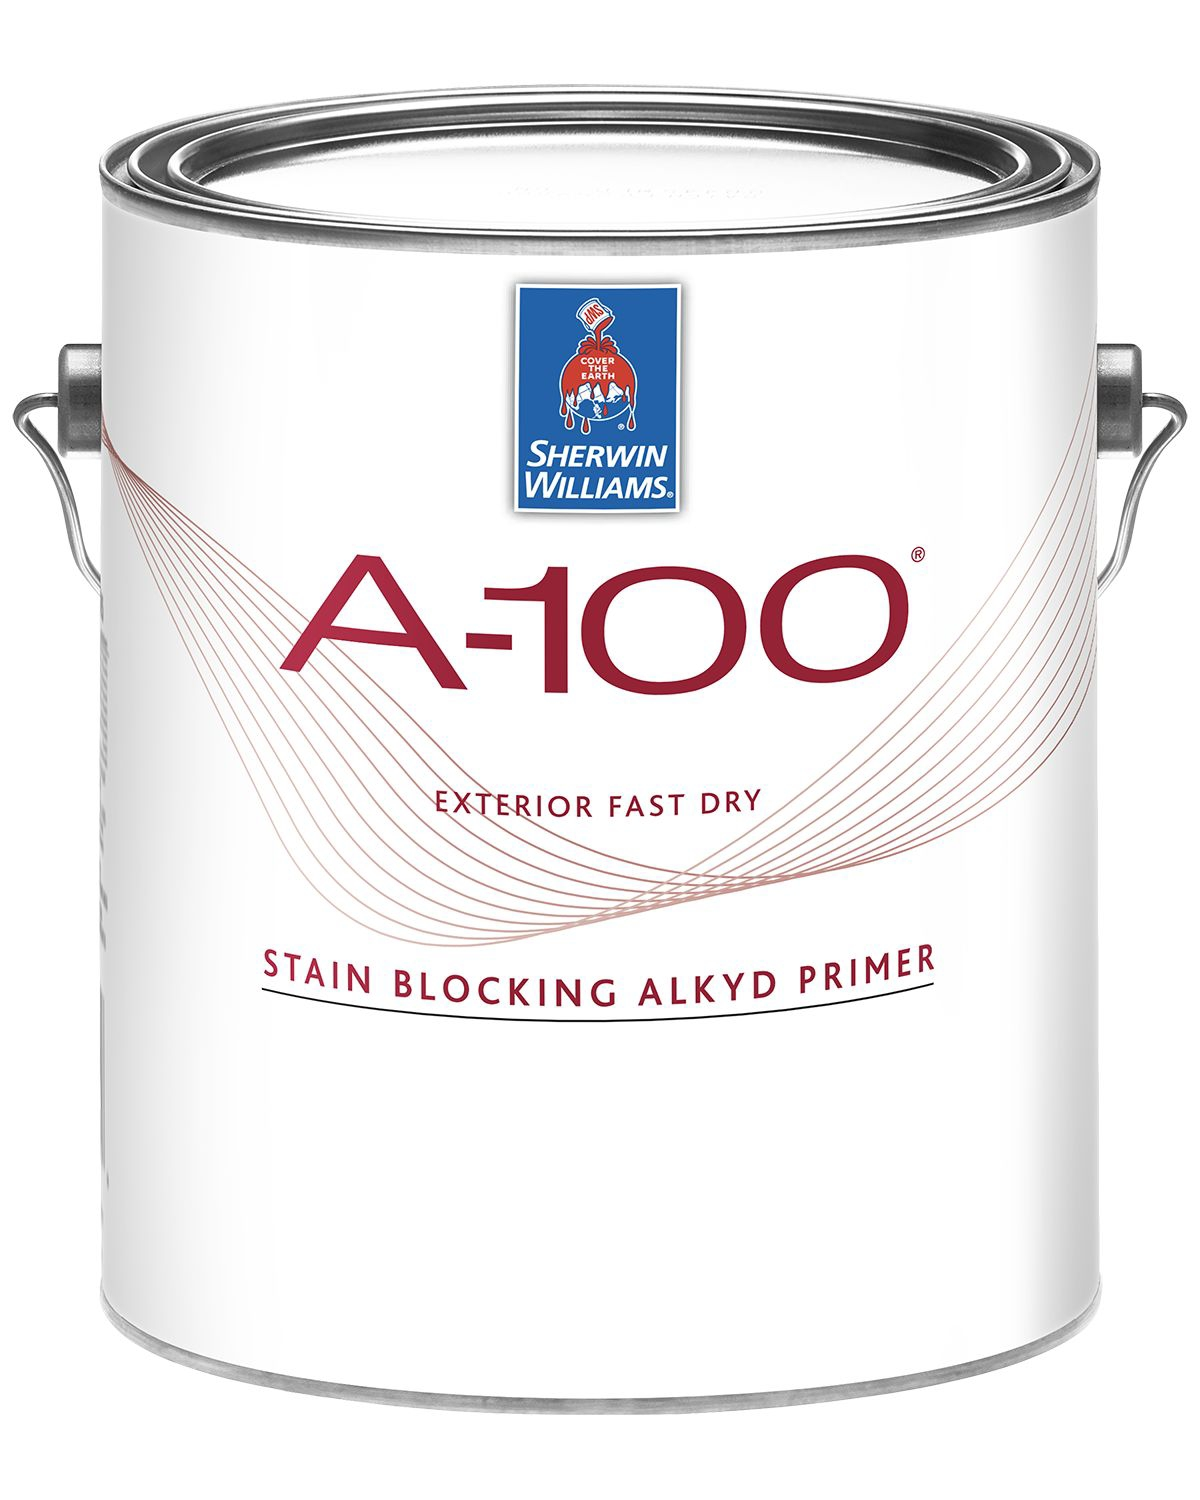 A-100 Exterior Fast Dry Stain Blocking Alkyd Wood Primer